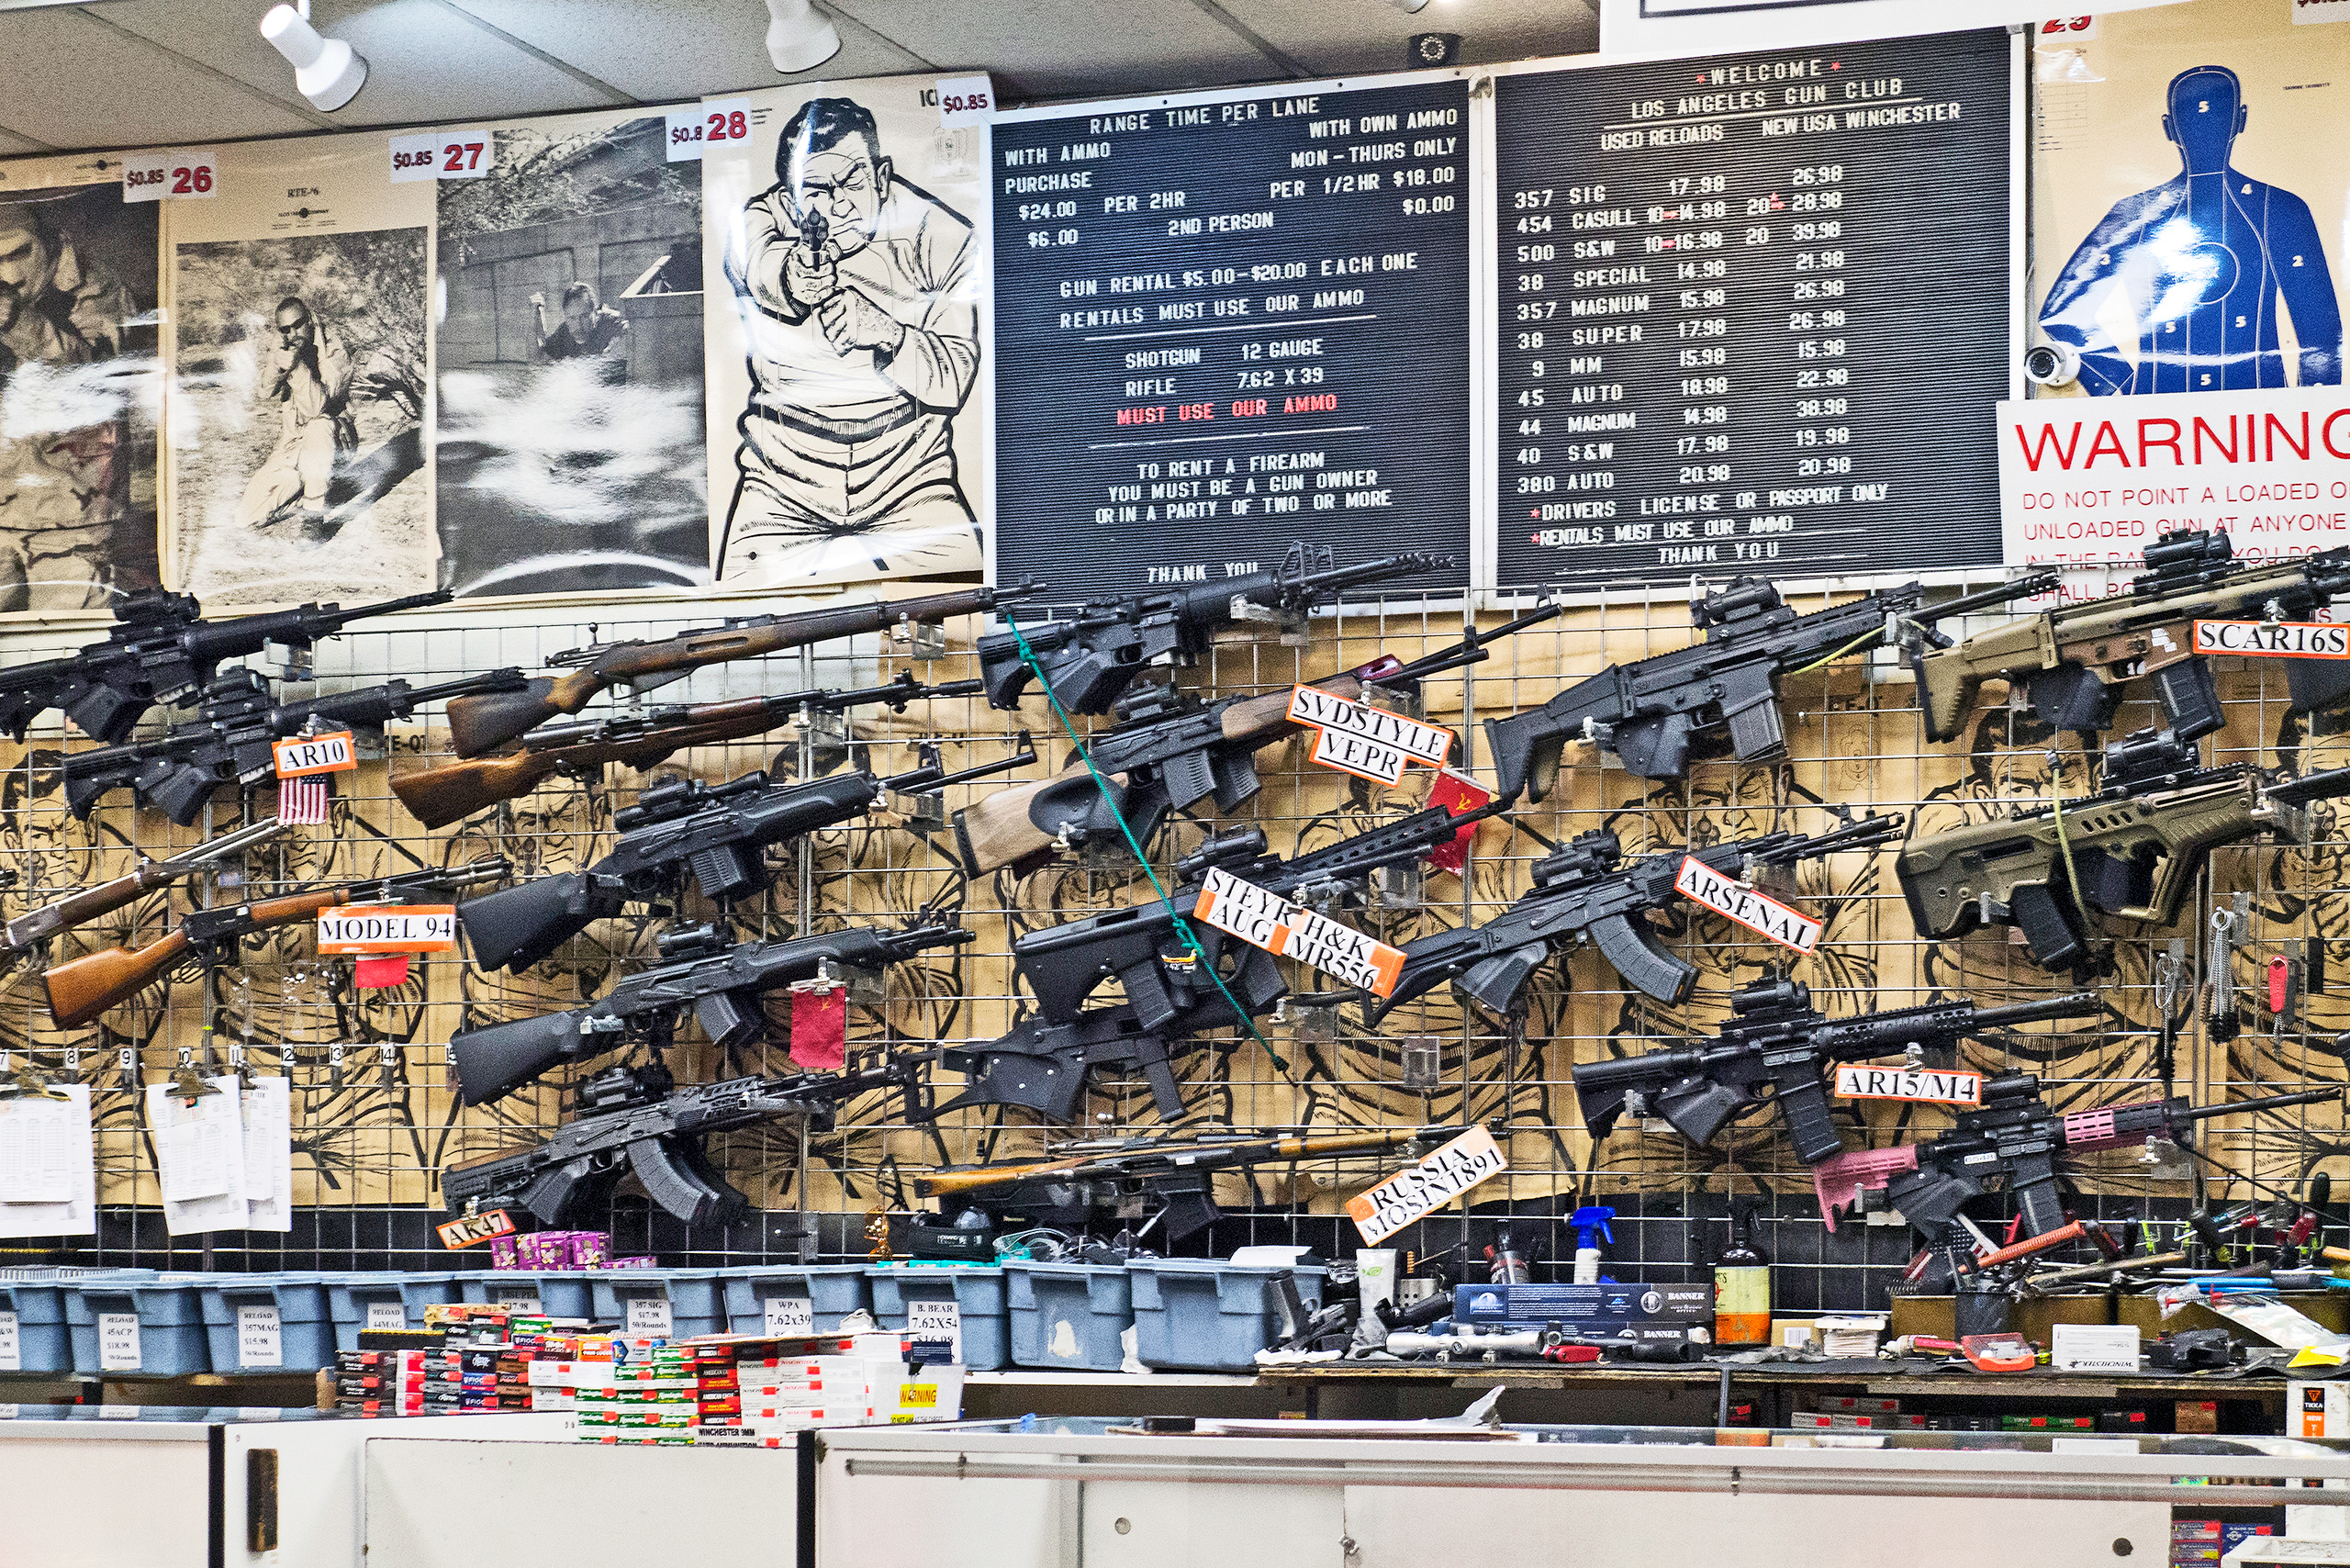 Gun Club – Los Angeles | Photo: Veronika Schneider